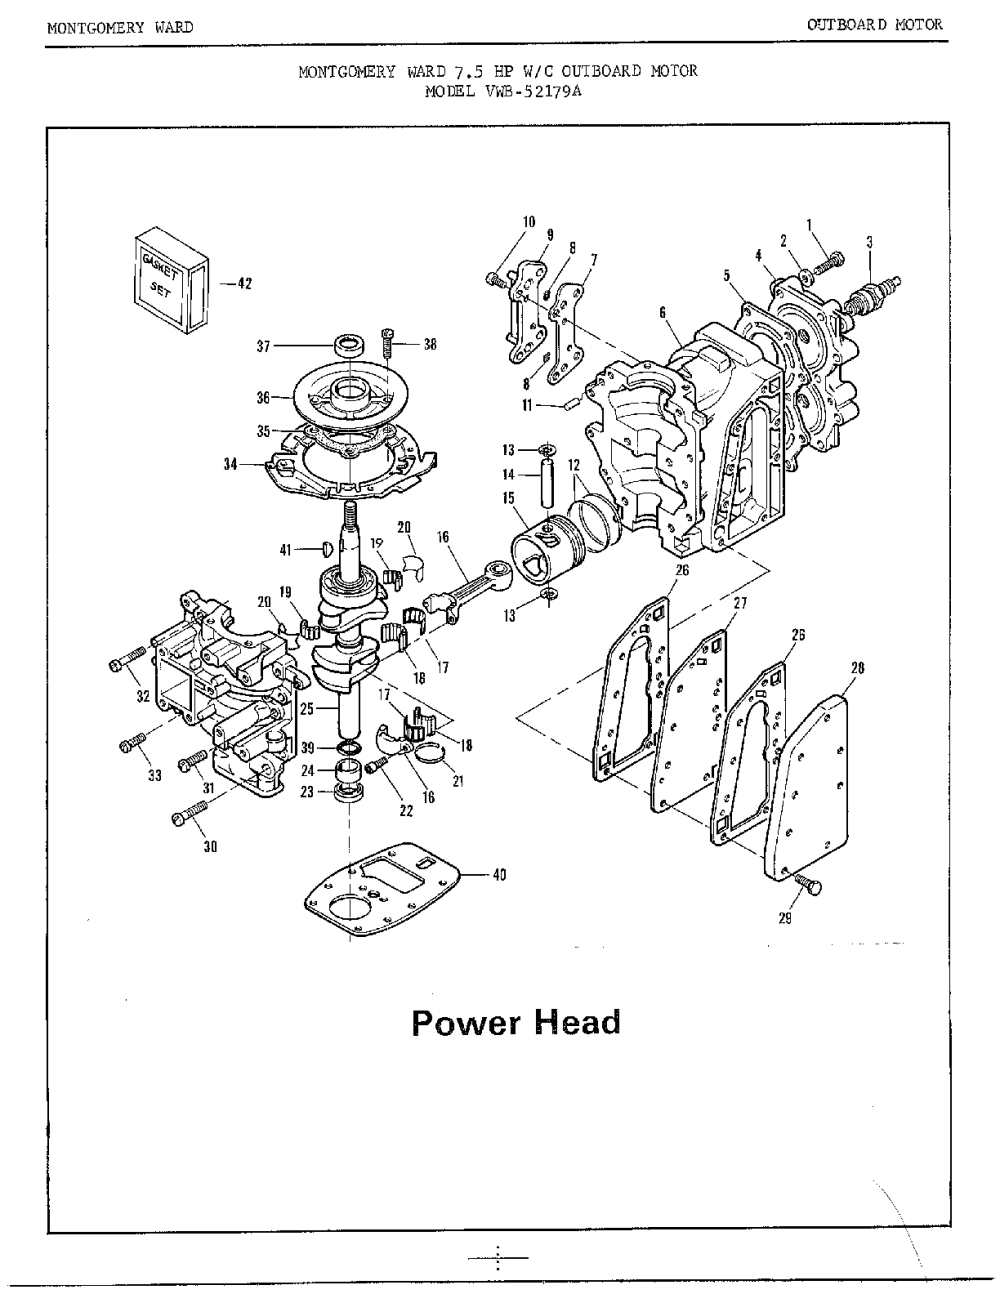 medium resolution of schematic for mercury outboard motor